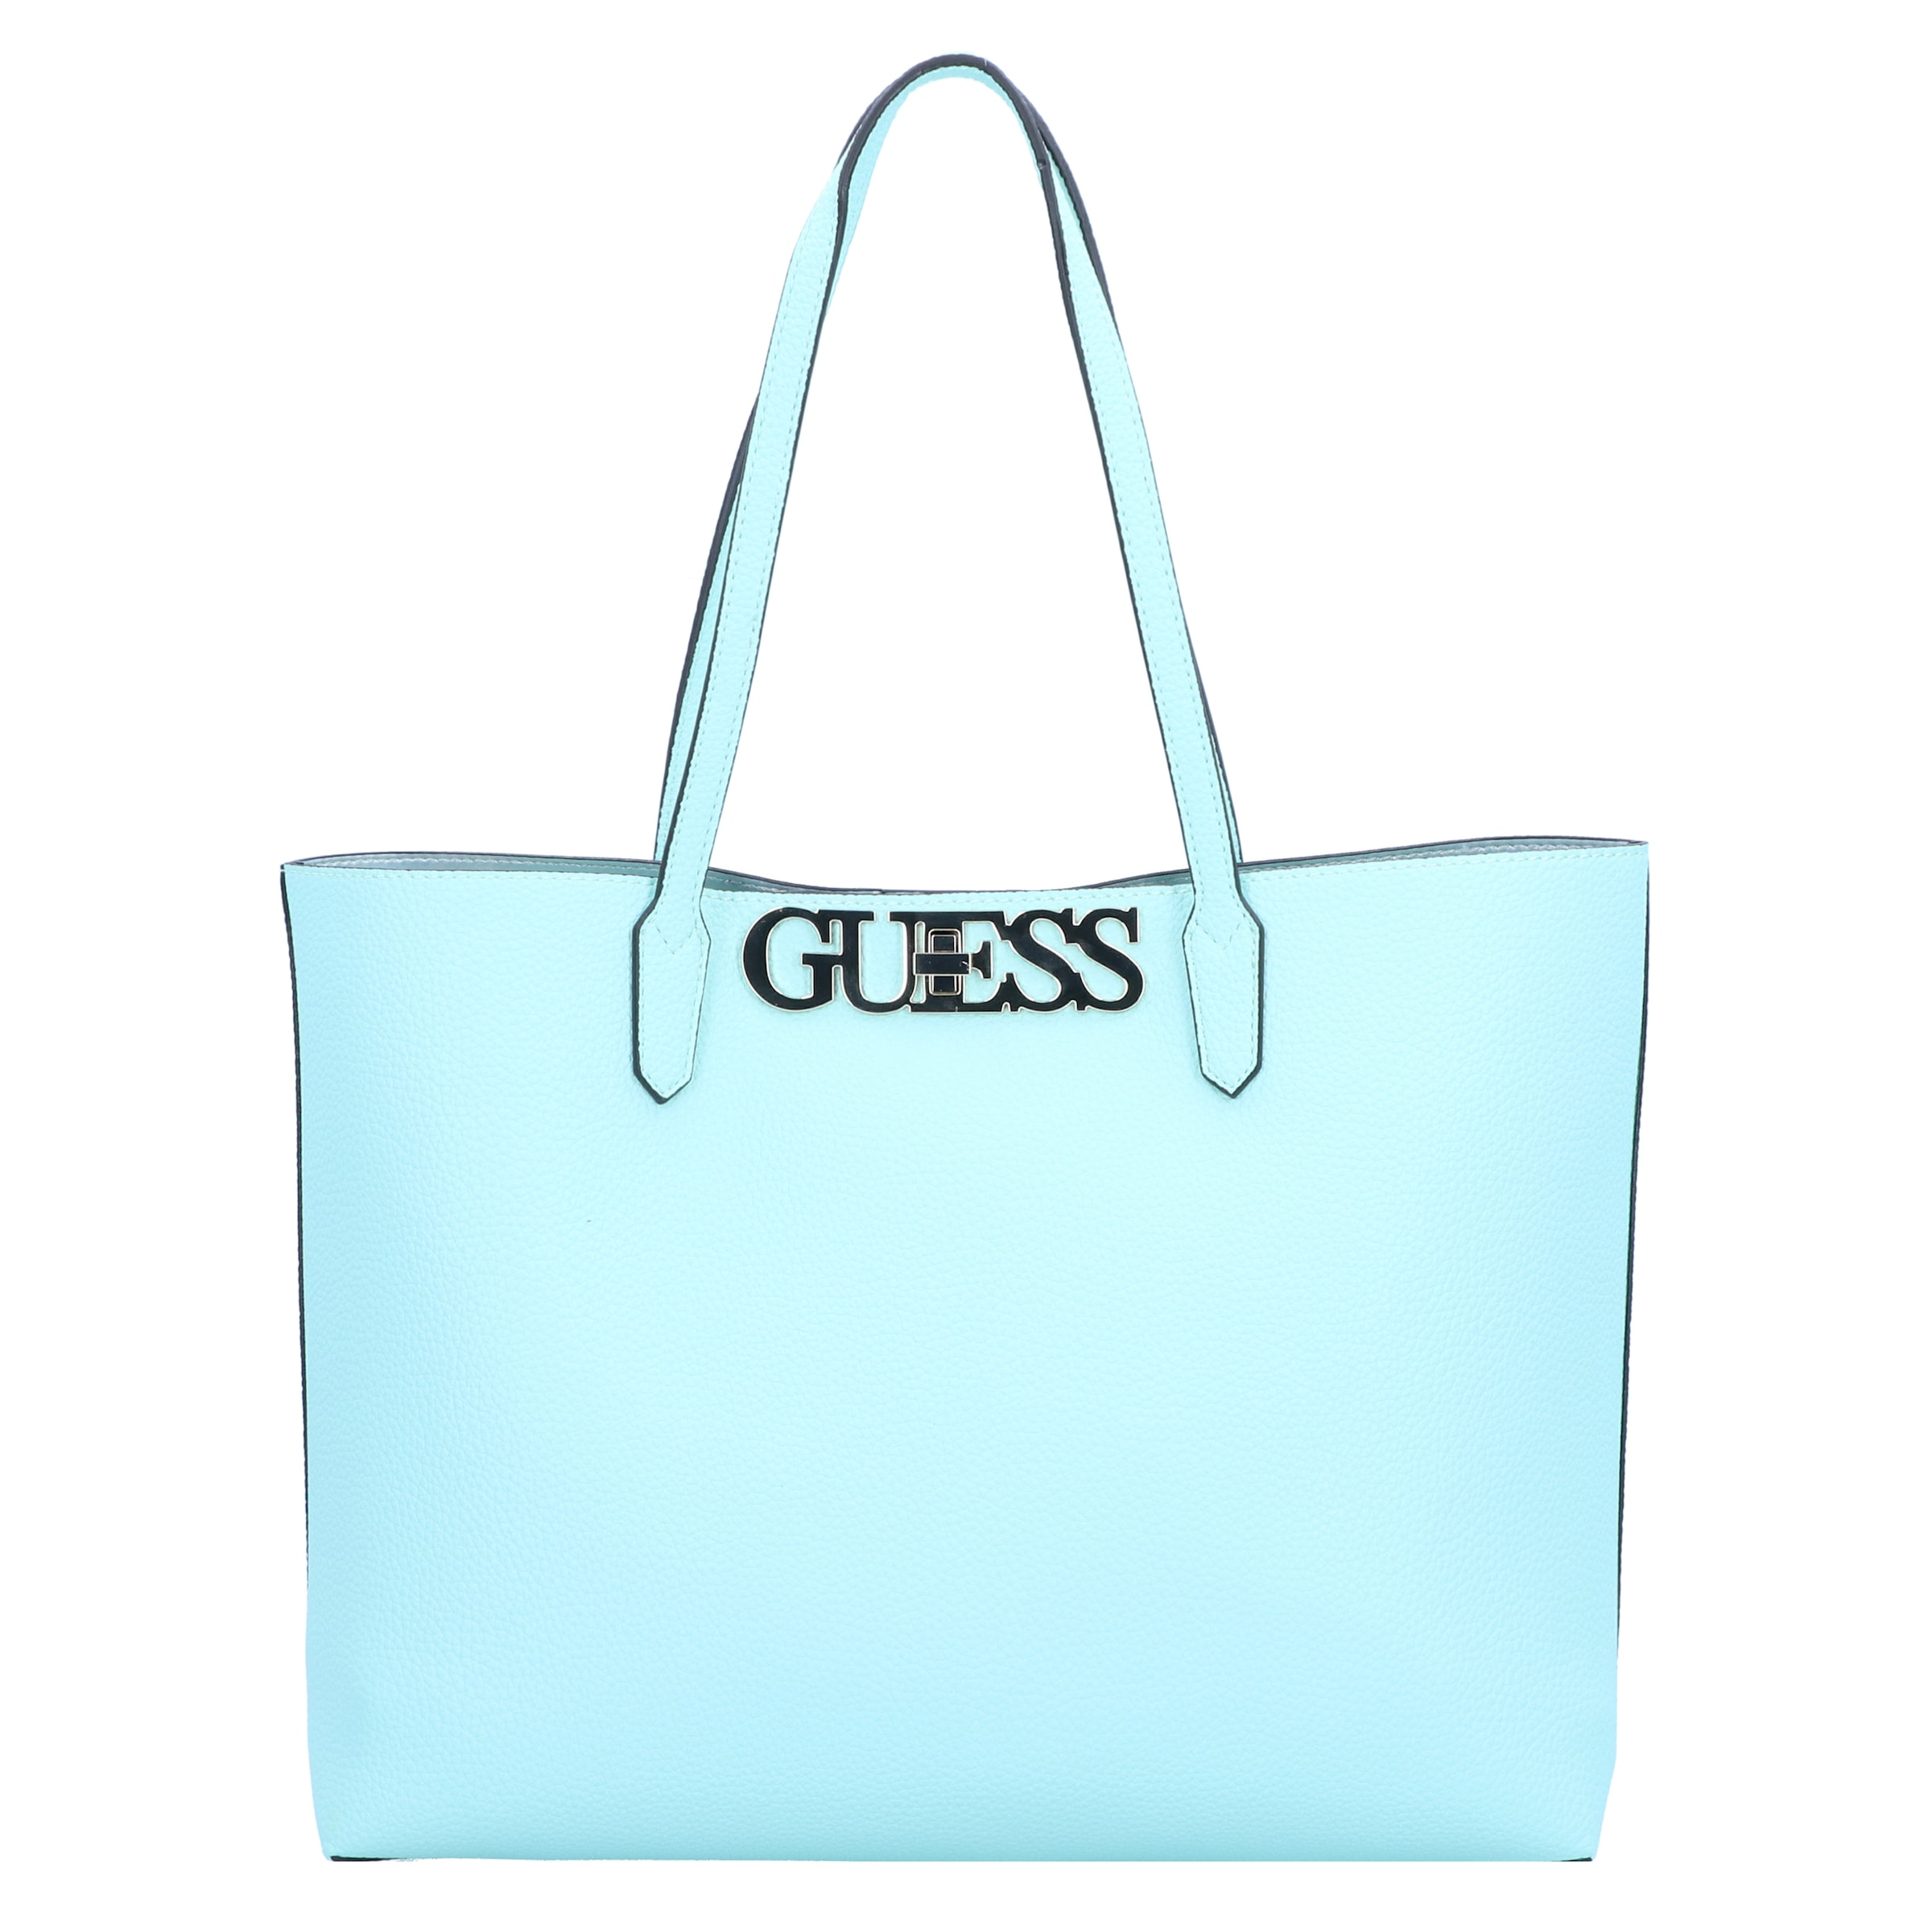 In Guess Chic' 'uptown Tasche Pink XPOikZu